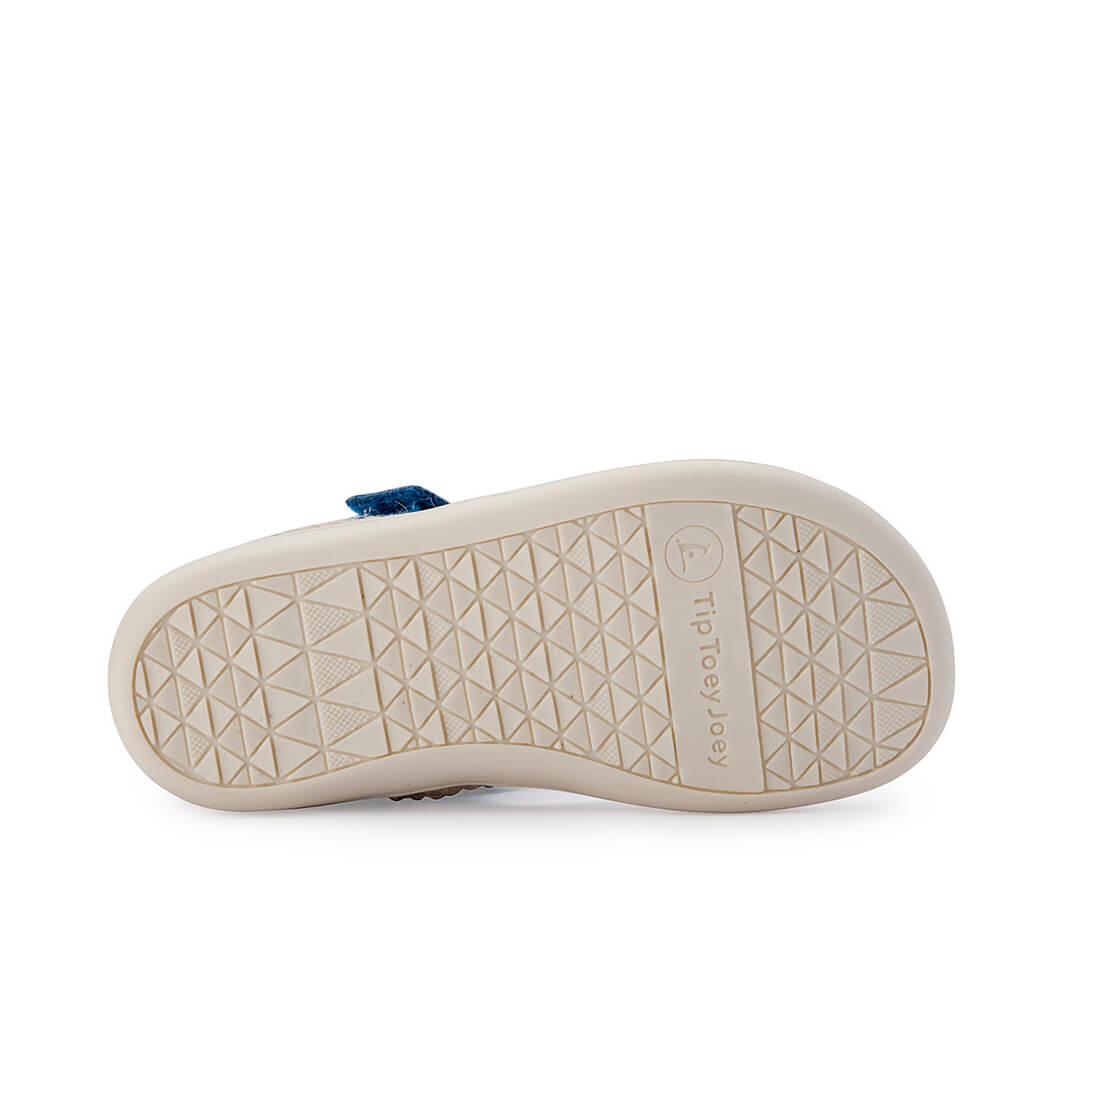 Little Seaside Sandals - Denim Espadrille sole